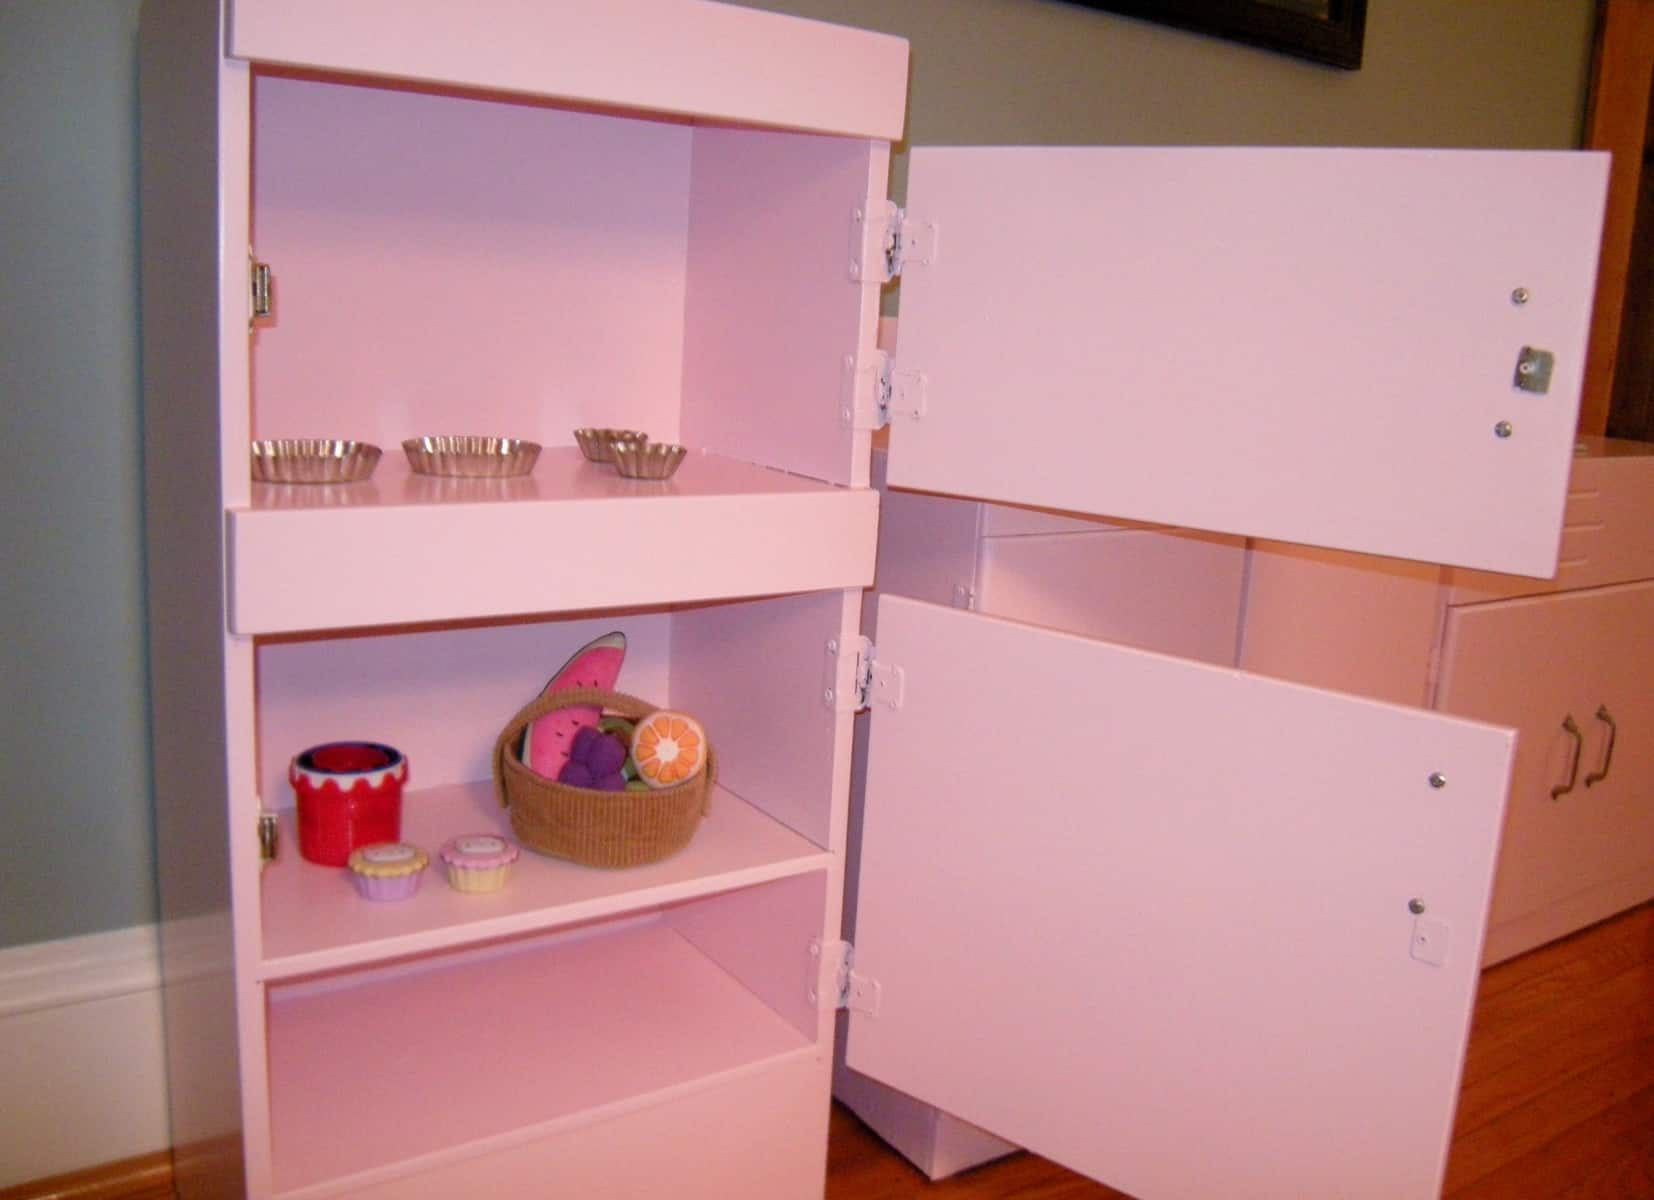 Mini Kitchen Makeover With Pink Appeal Heartwork Organizing Tips